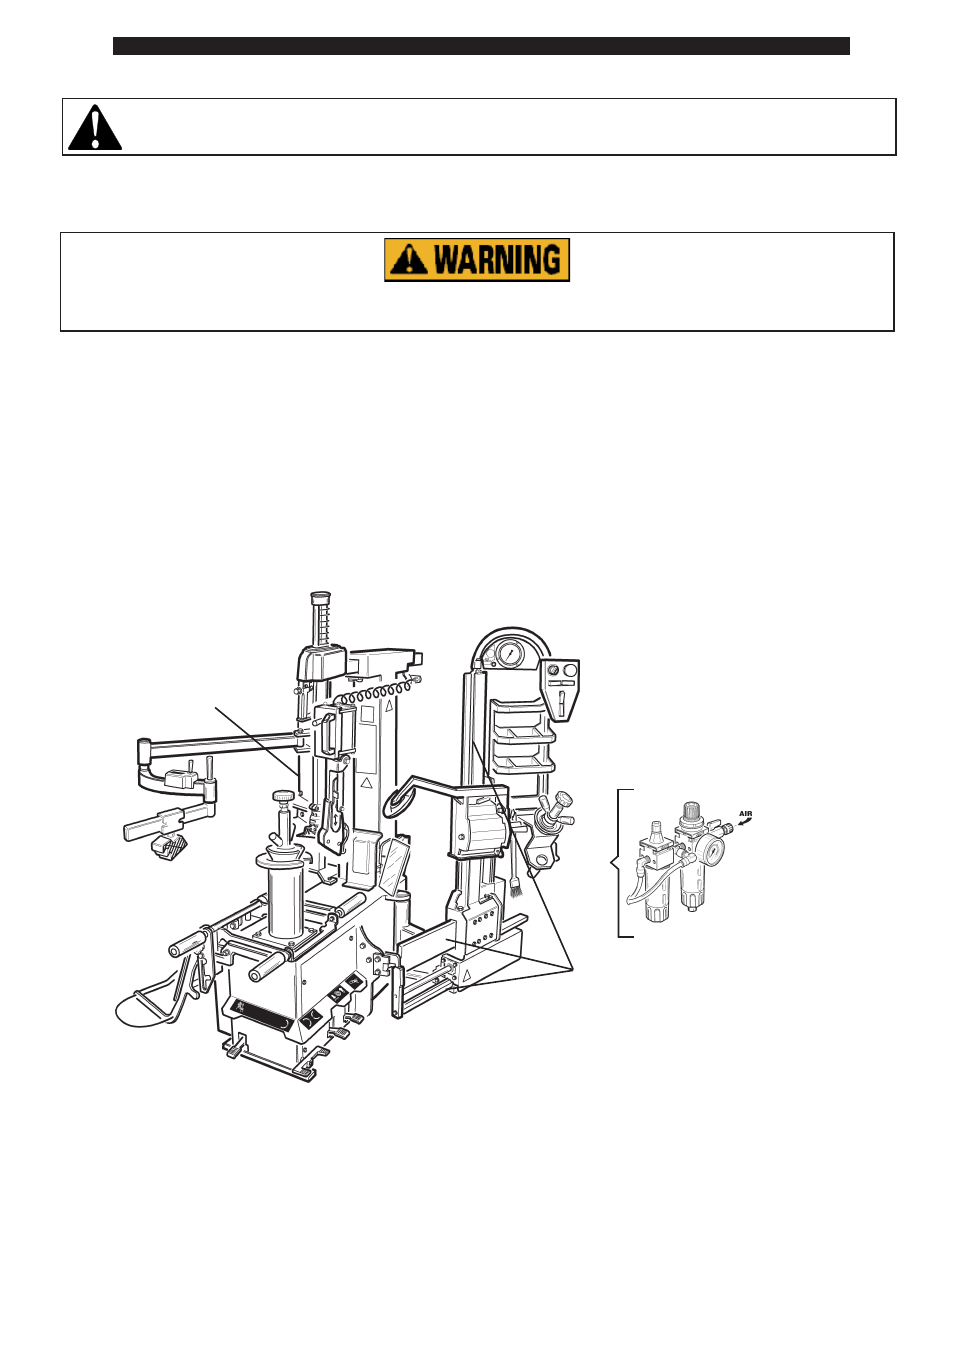 COATS ProGuard Leverless Plus Tire Changer User Manual ...